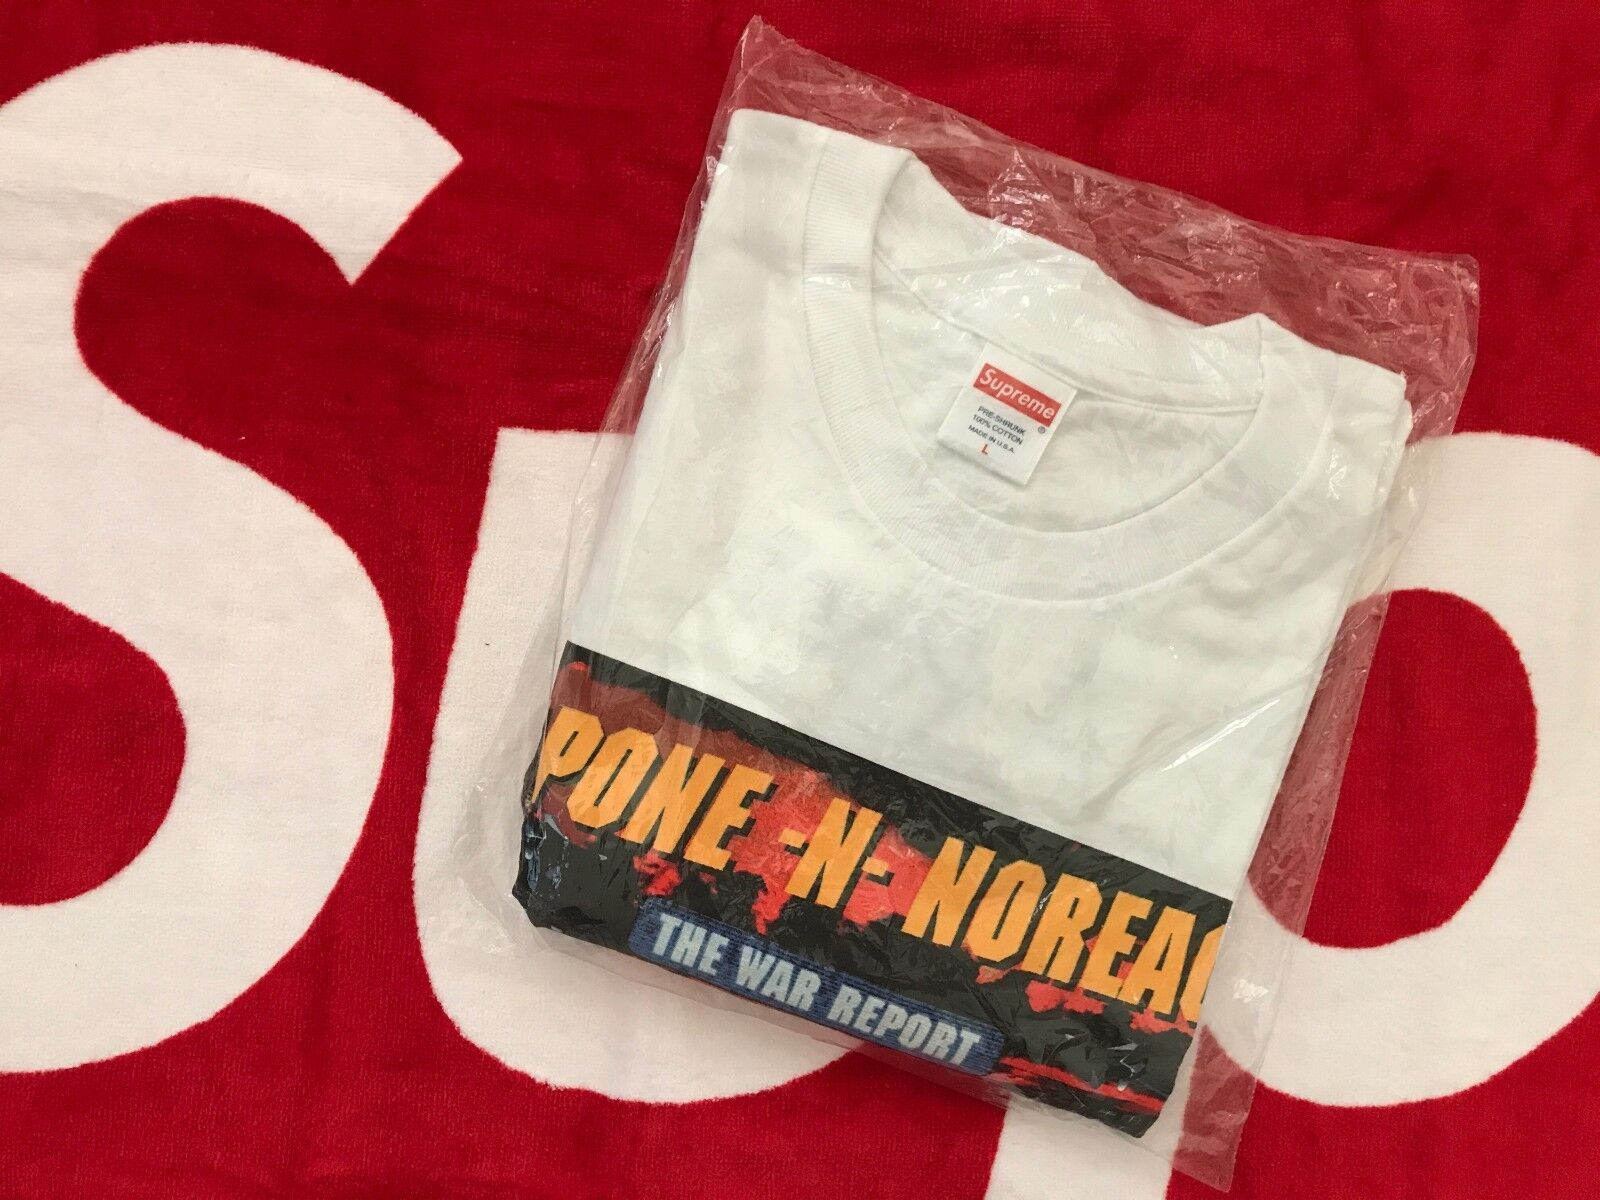 Supreme Capone N Noreaga War Report Tee Shirt T Authentic NEW L Large